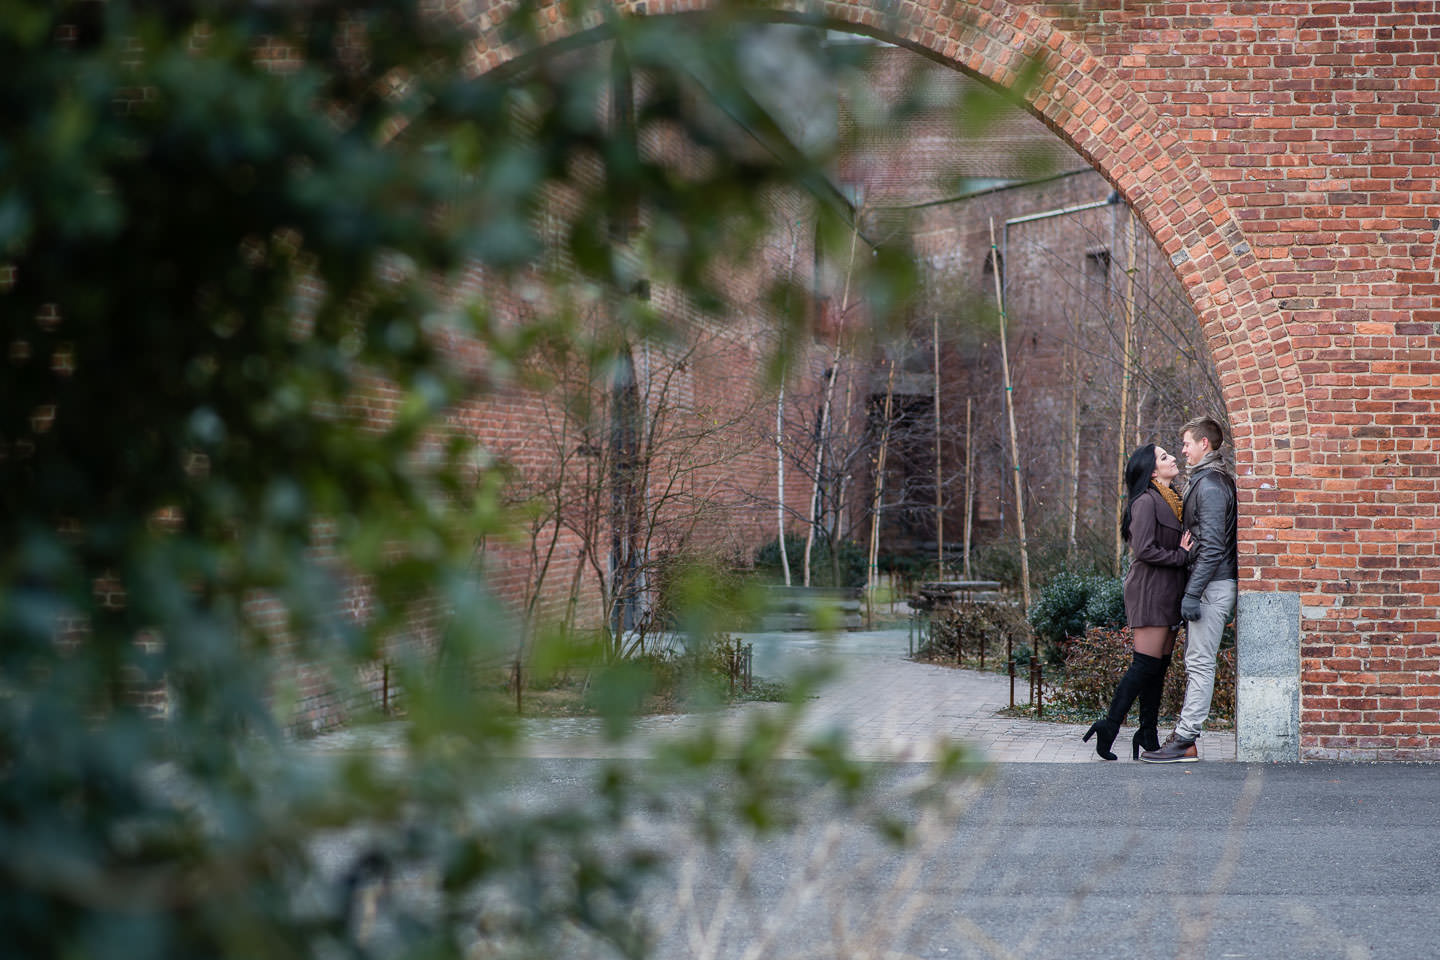 engagement session under archway in dumbo, brooklyn